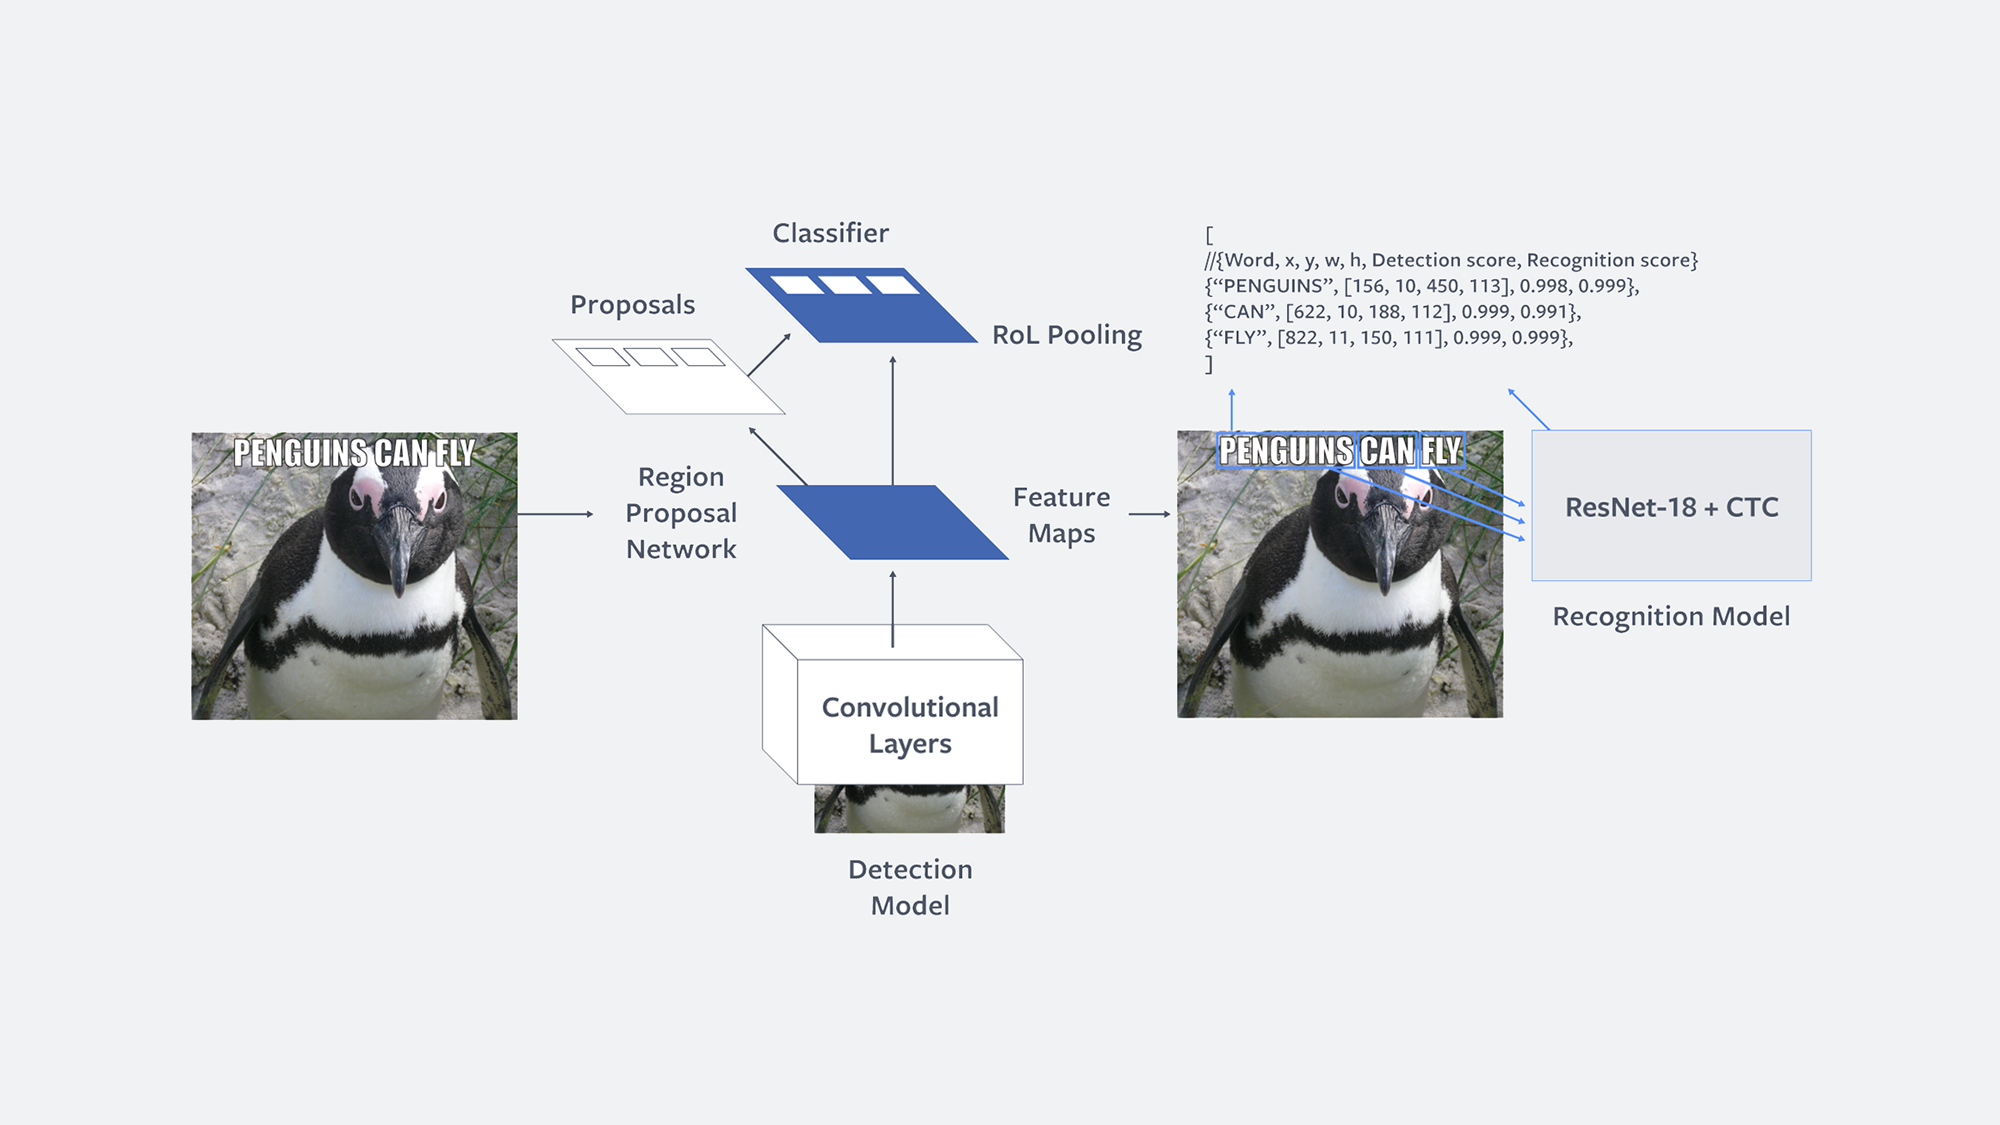 Rosetta: Understanding text in images and videos with machine